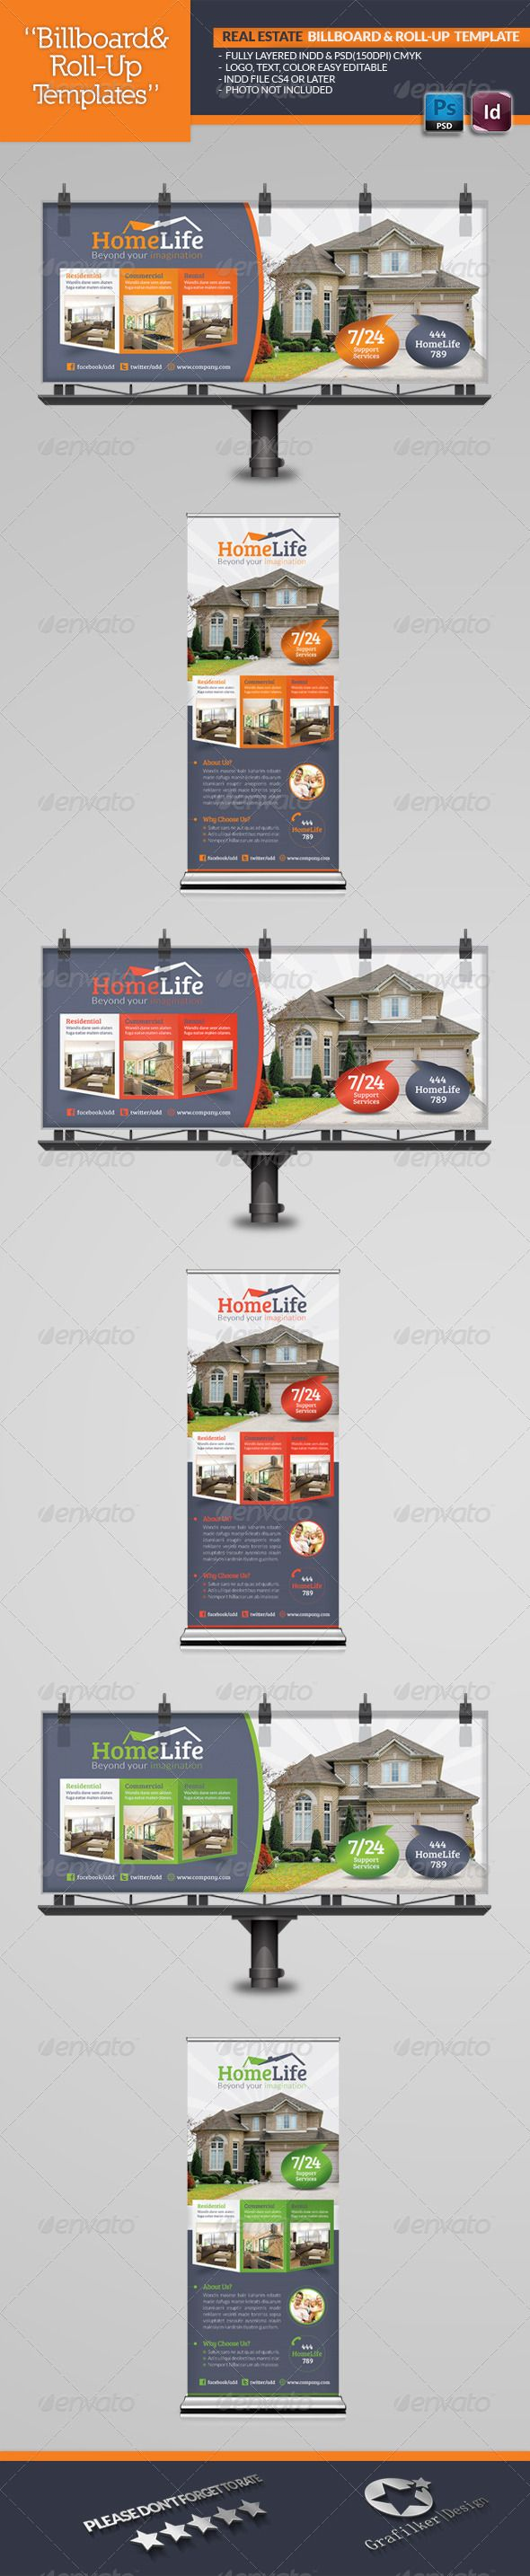 Real Estate Billboard & RollUp Template — Photoshop PSD #real estate agents #store • Available here → https://graphicriver.net/item/real-estate-billboard-rollup-template/5212636?ref=pxcr